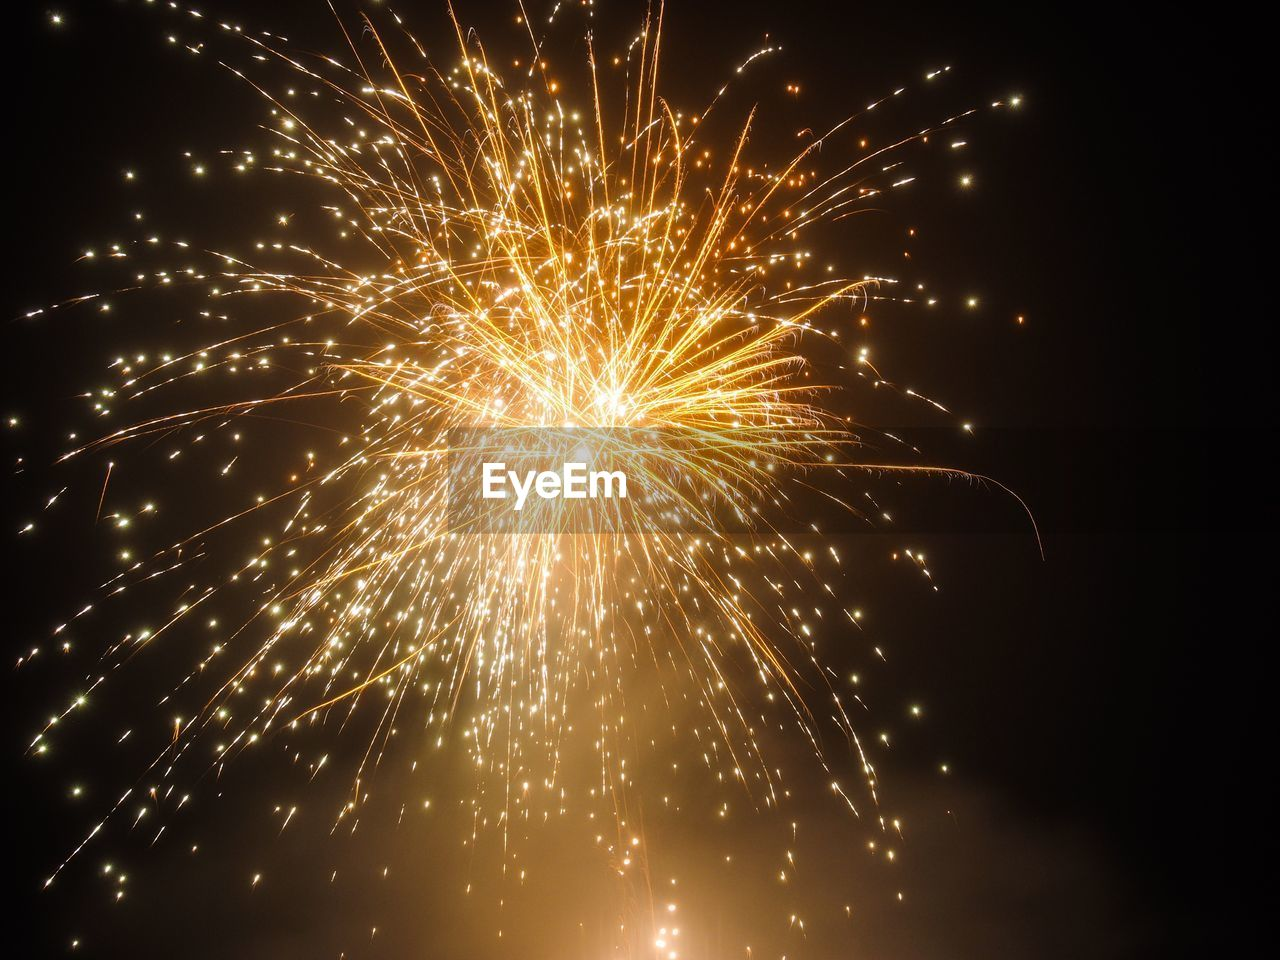 celebration, motion, illuminated, night, firework, arts culture and entertainment, glowing, event, long exposure, firework display, exploding, low angle view, no people, nature, sky, firework - man made object, light, blurred motion, burning, outdoors, sparks, sparkler